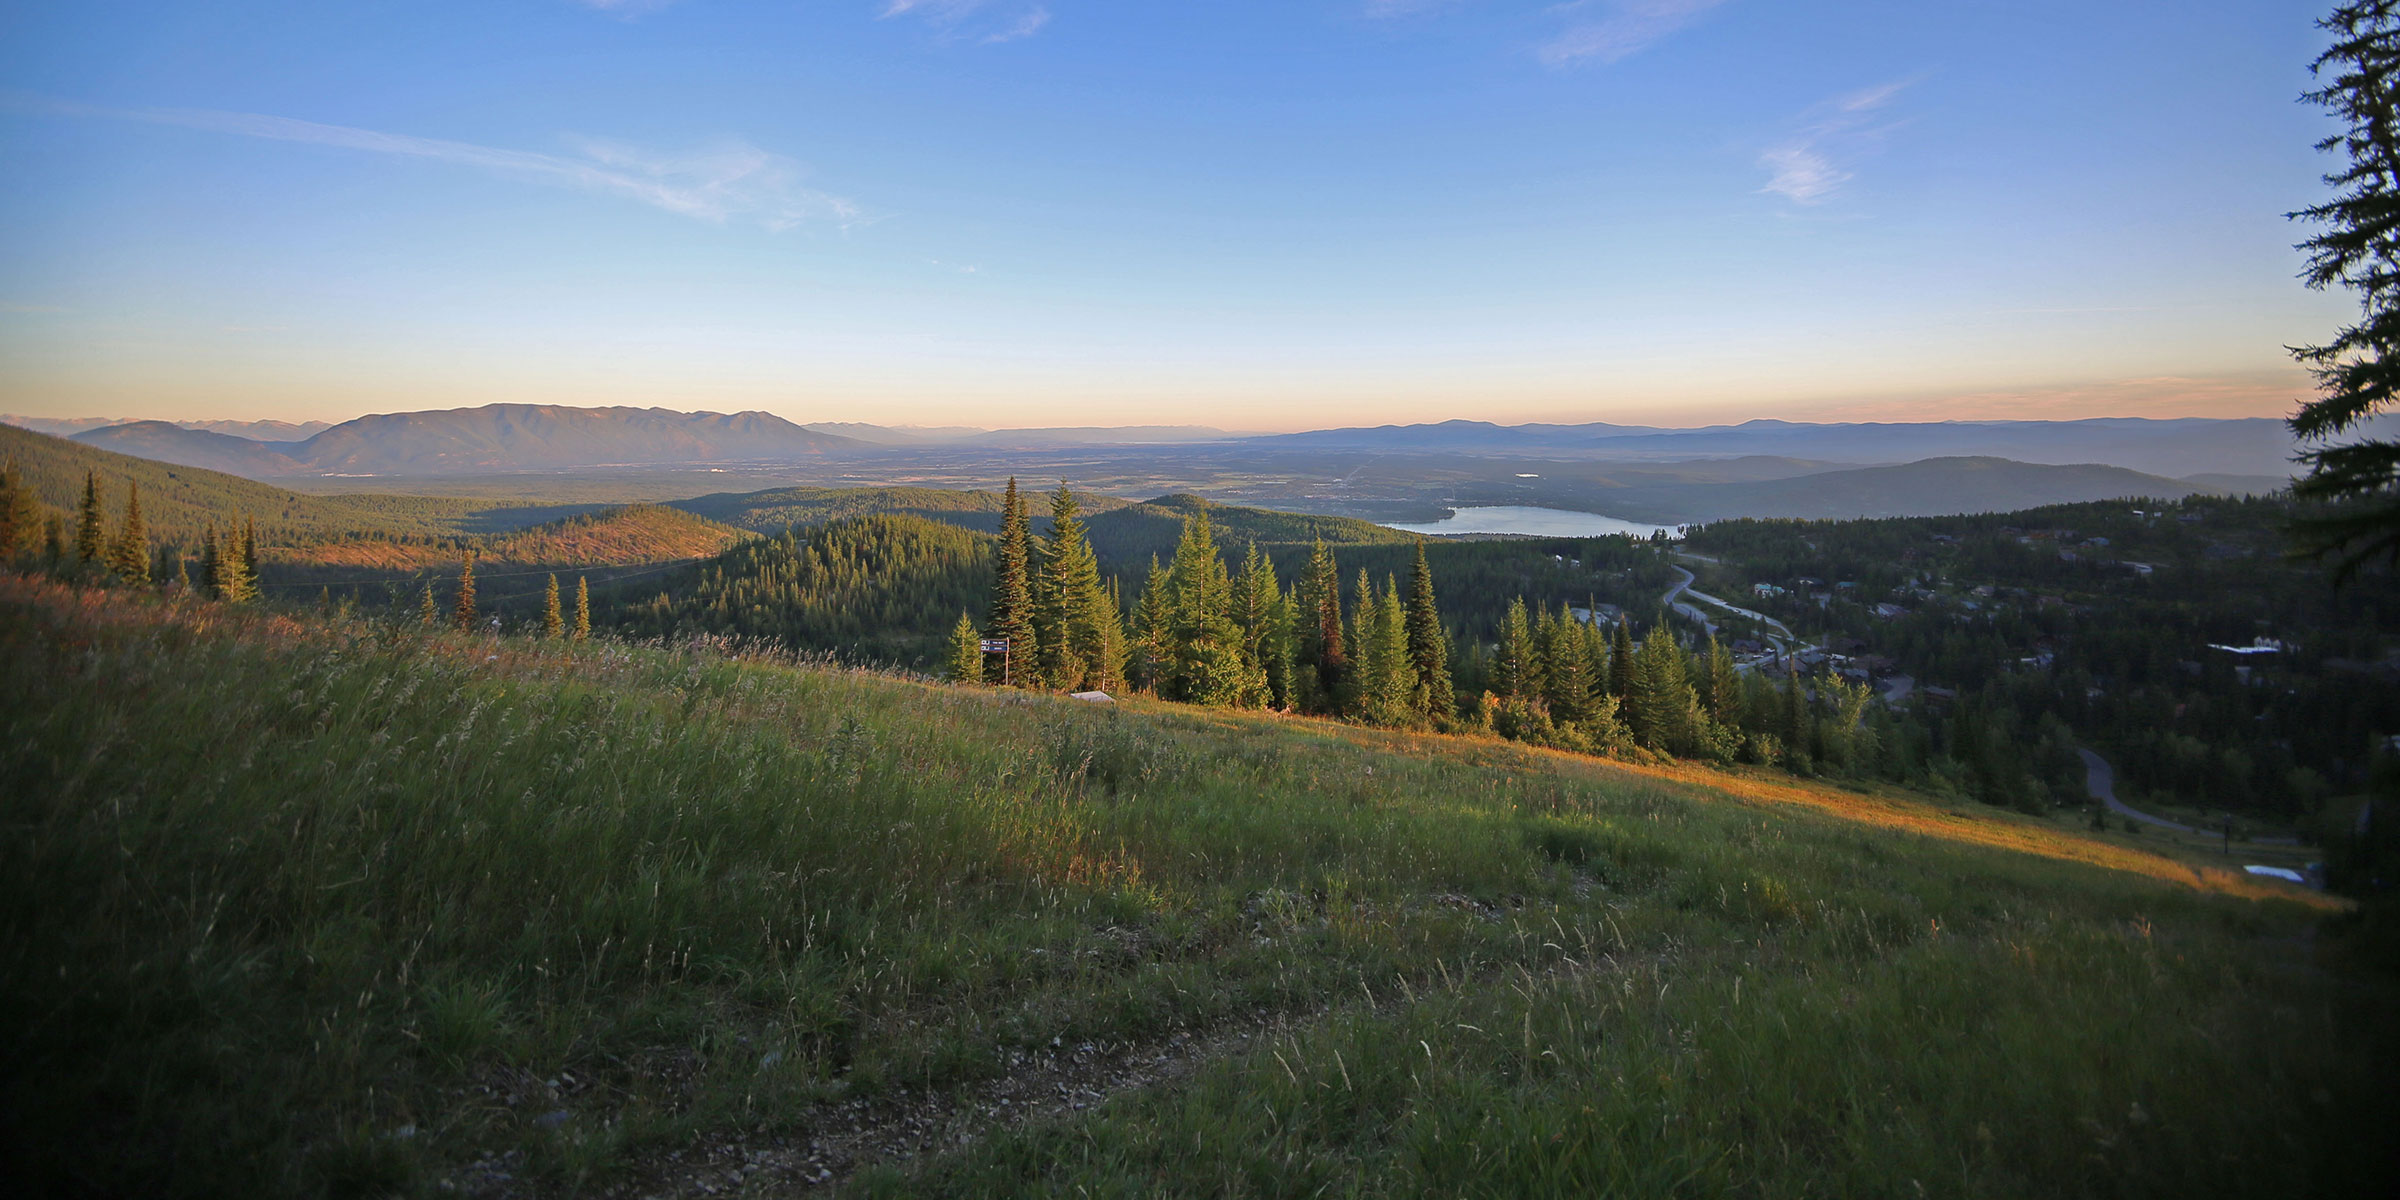 Looking south down the Flathead Valley